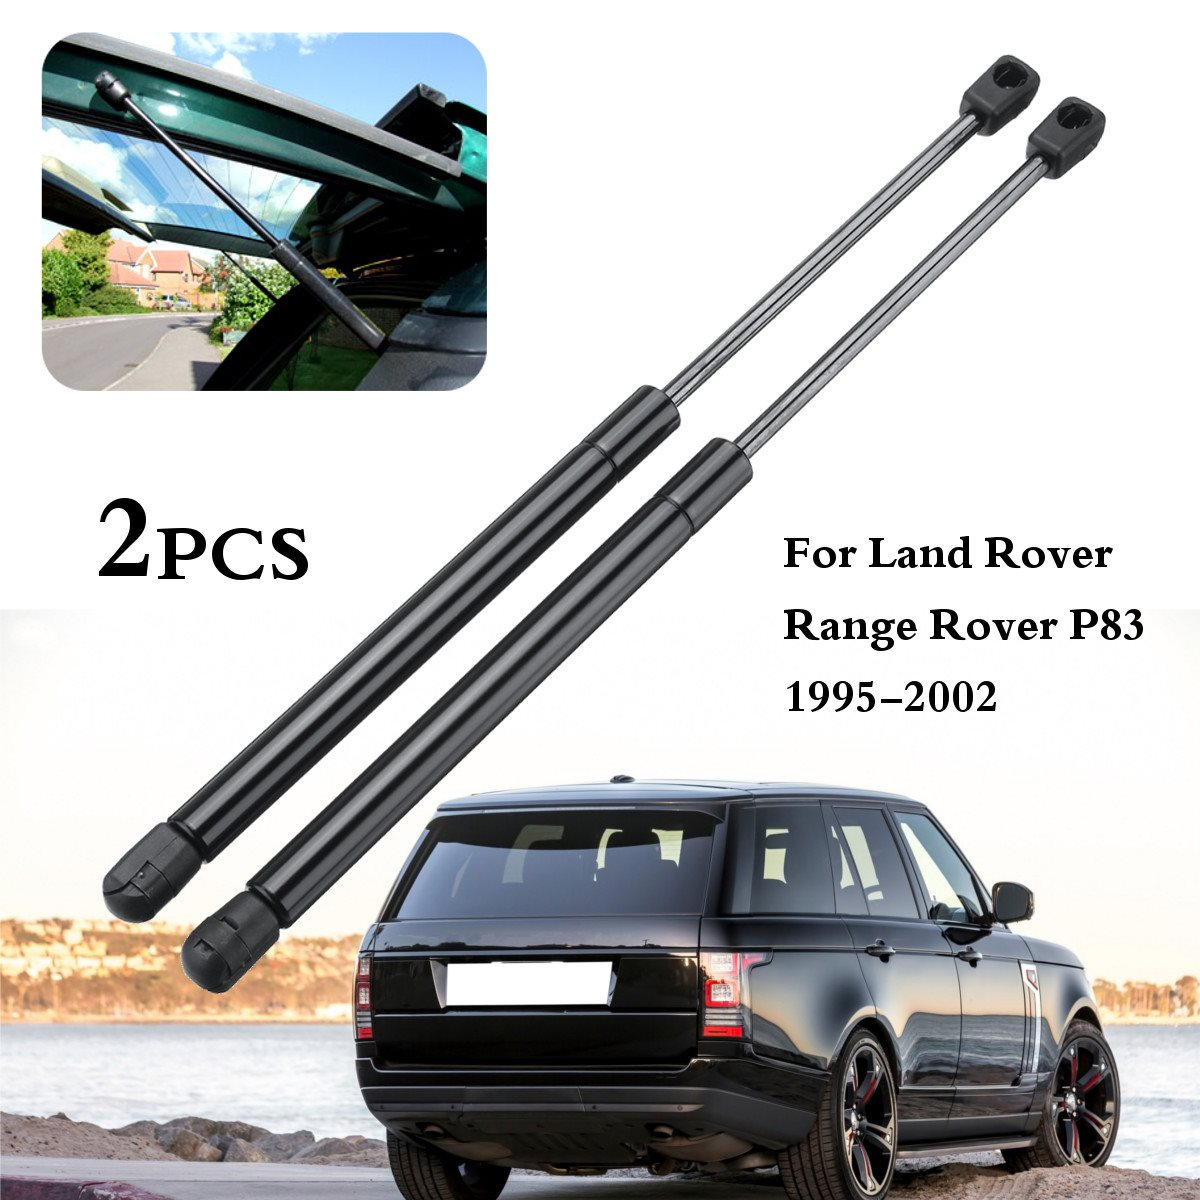 2Pcs Car Rear Tailgate Boot Gas Struts Support For Land Rover Range Rover P38 1995-2002 reb101740 2xfront air suspension spring bag for land rover range rover p38 mk ii 1994 2002